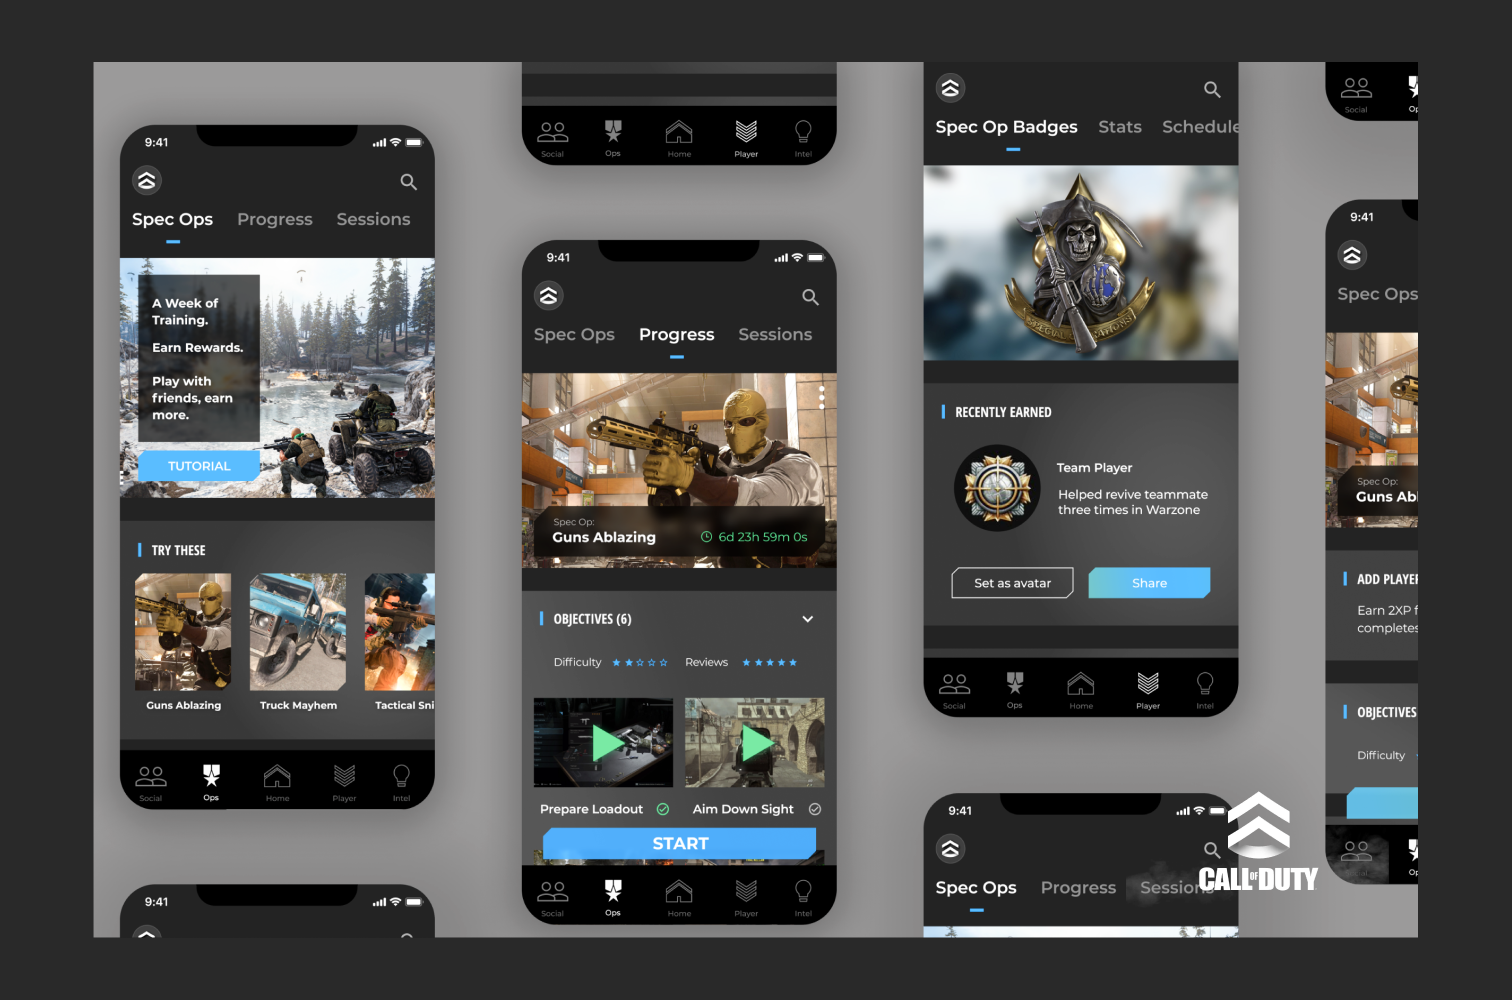 iPhones with screens of designs of the call of duty companion app.